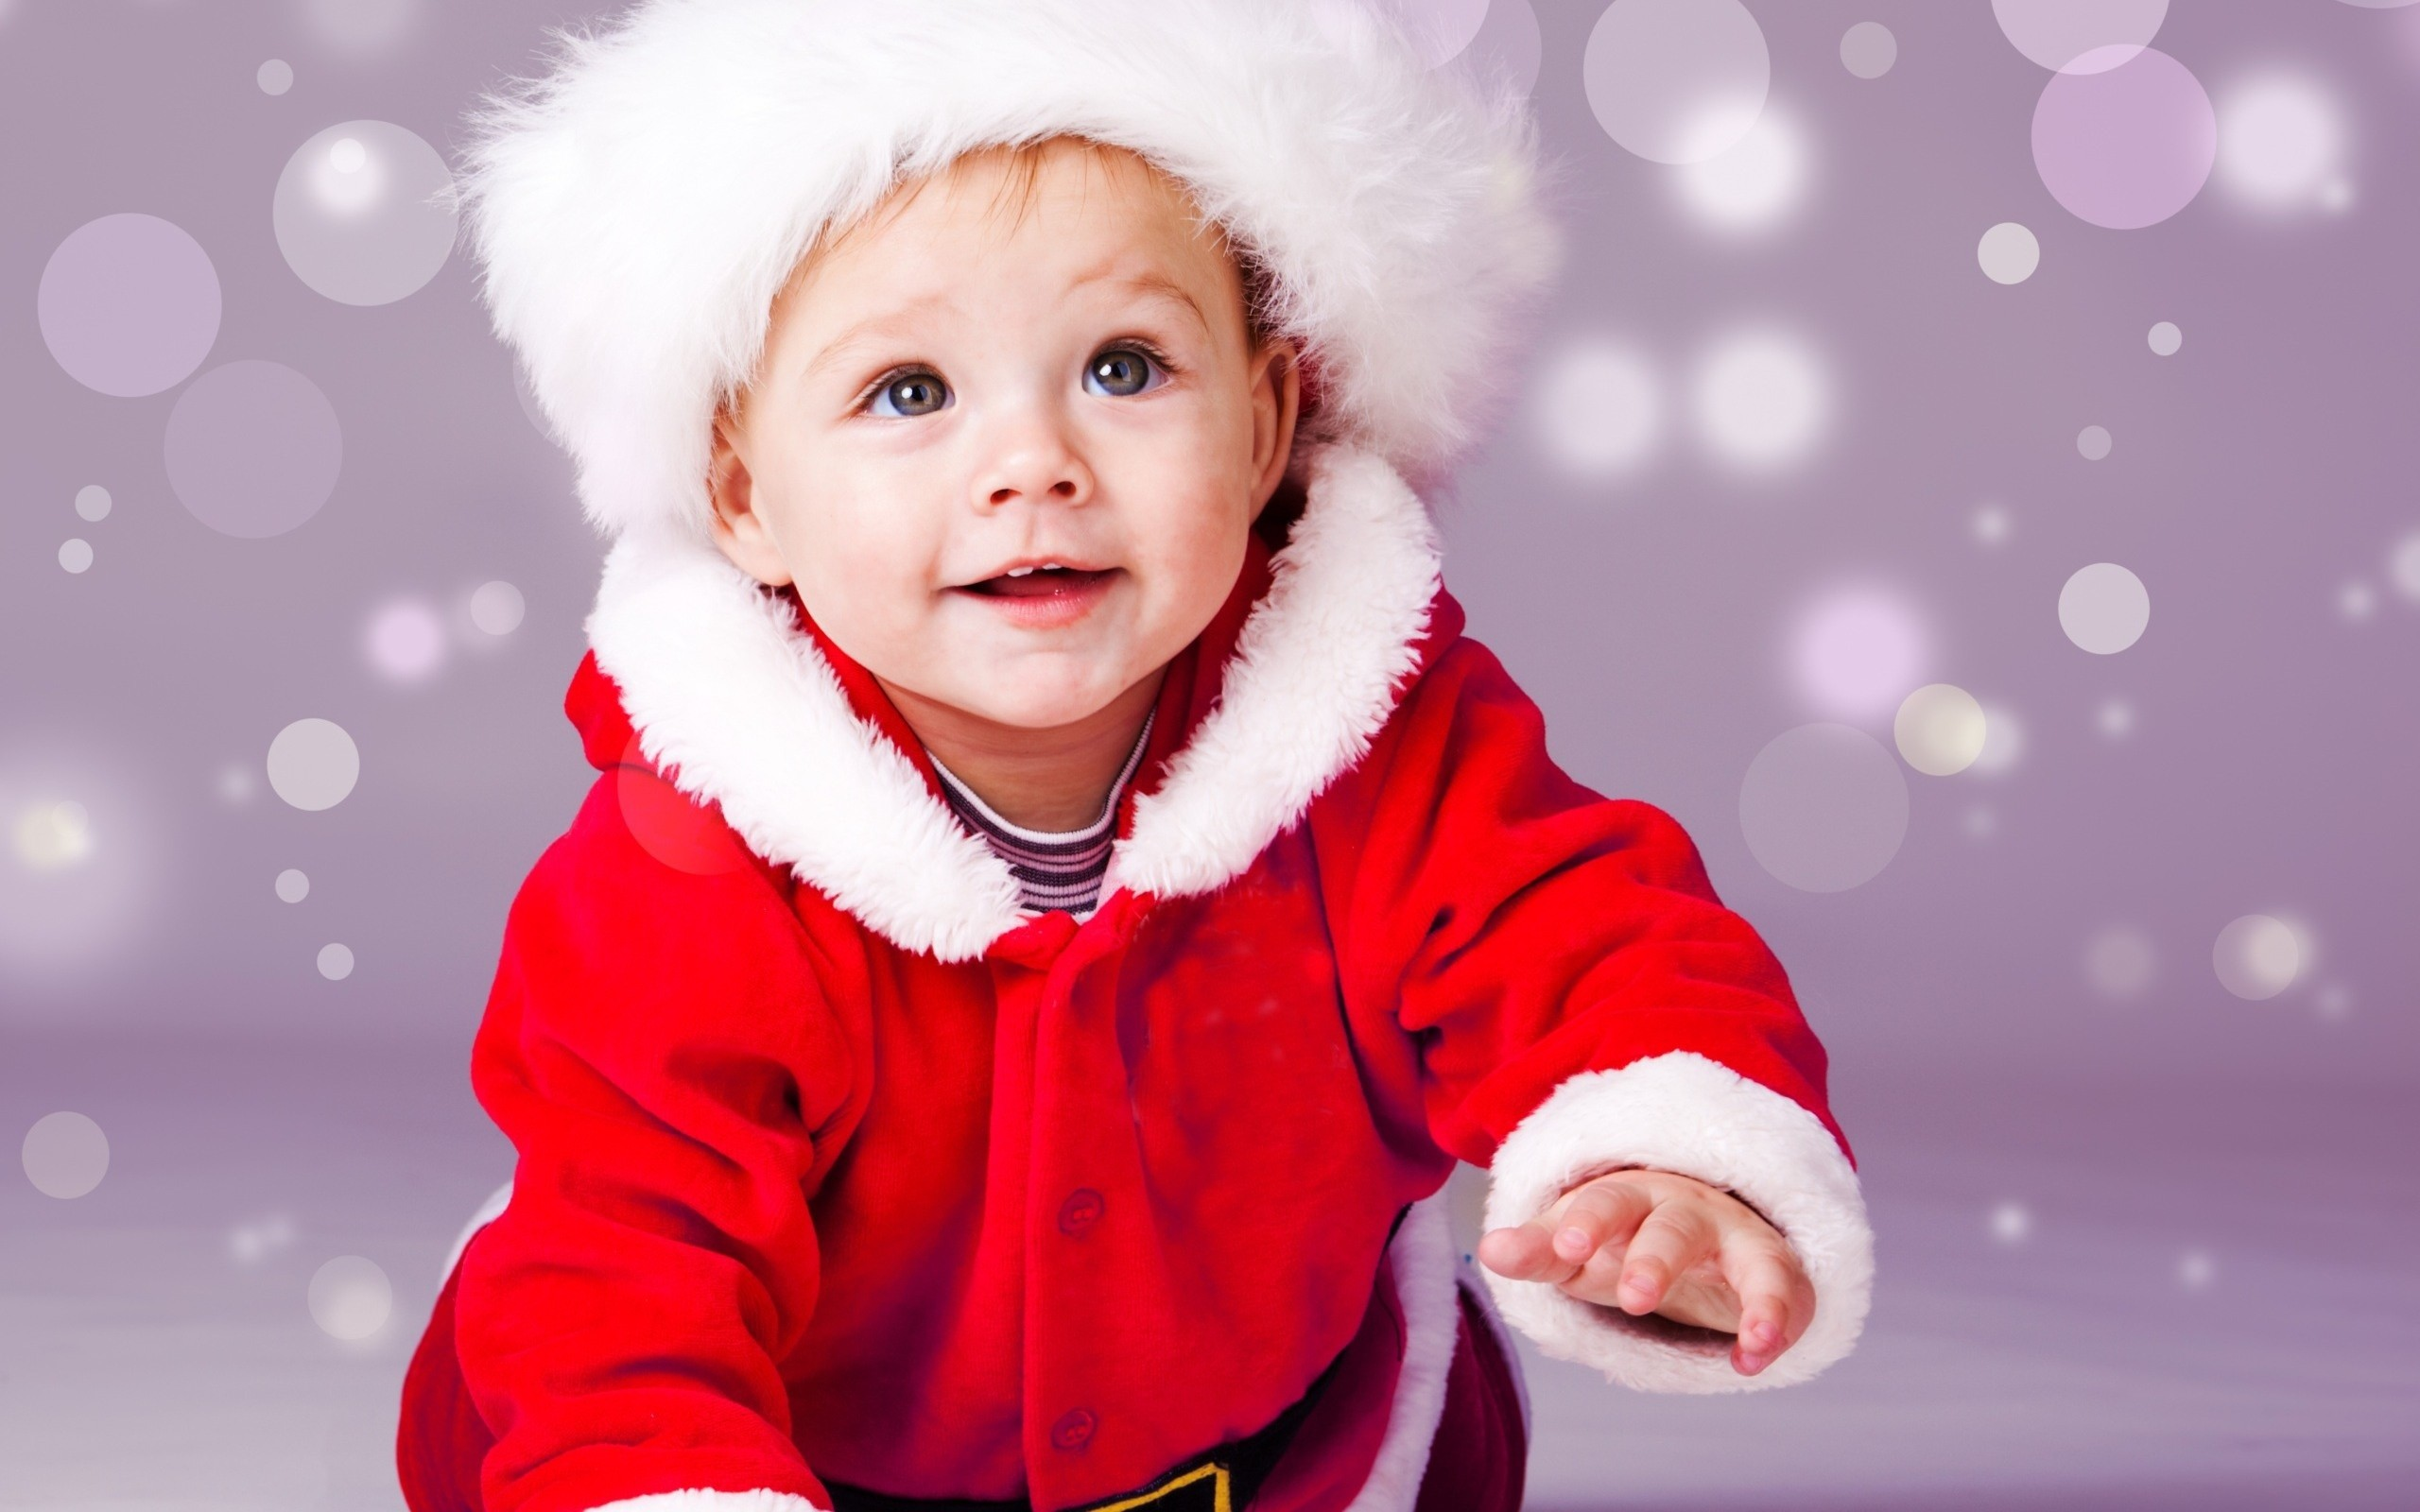 Cute Baby With Hat Wallpapers: Anne Geddes Christmas Babies Wallpaper (64+ Images